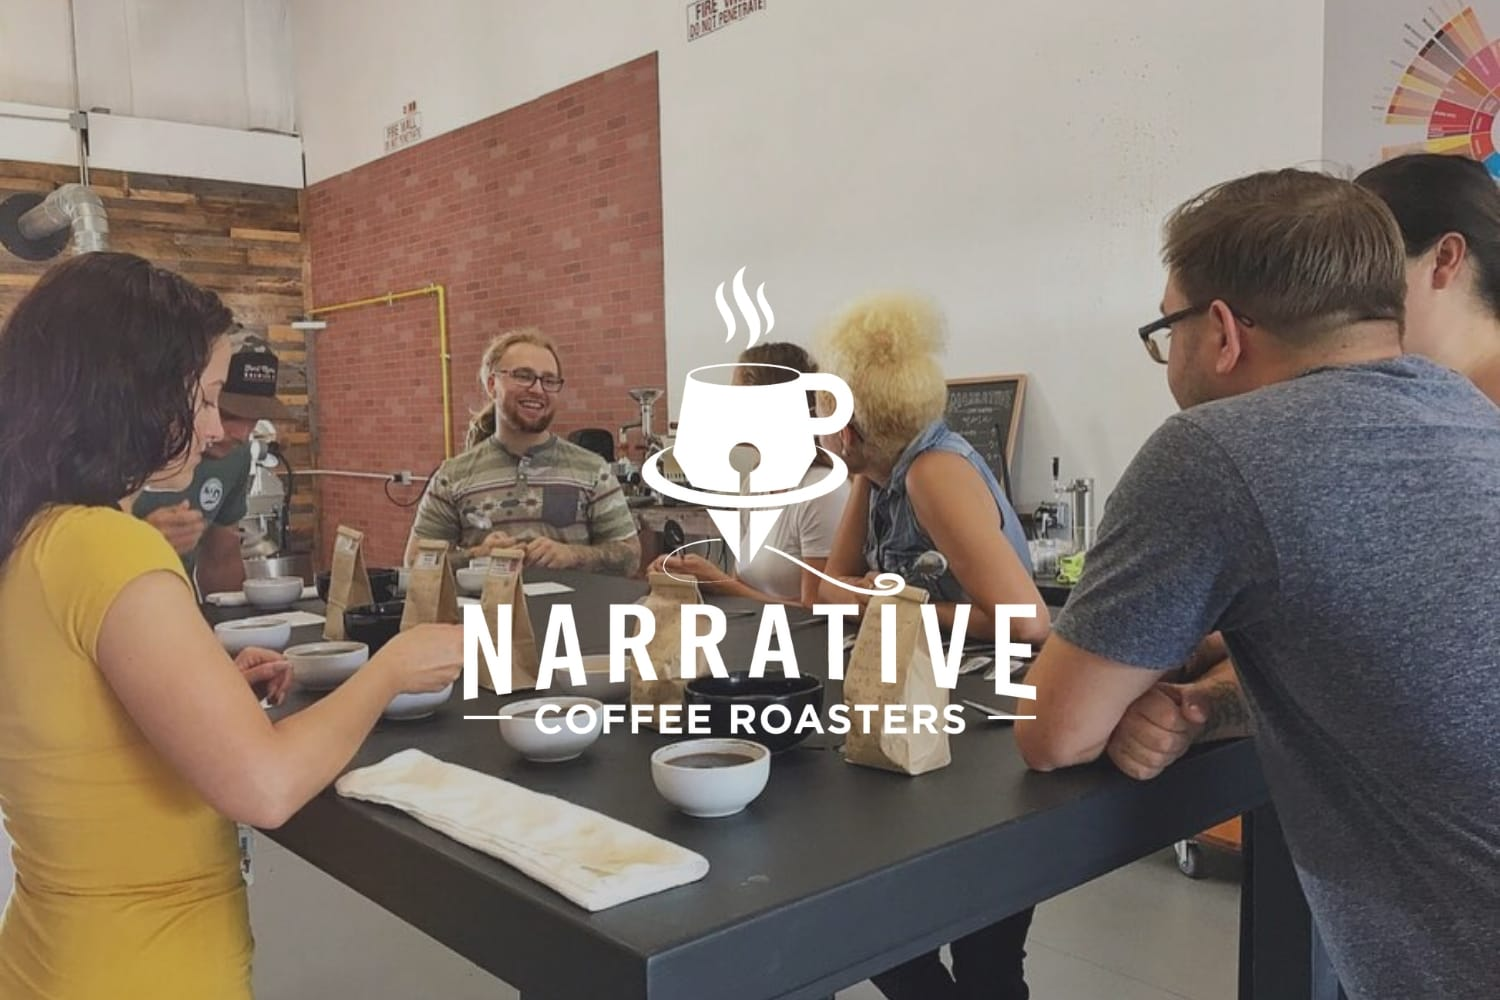 narrative-coffee-roasters-at-kunjani-naples.jpg